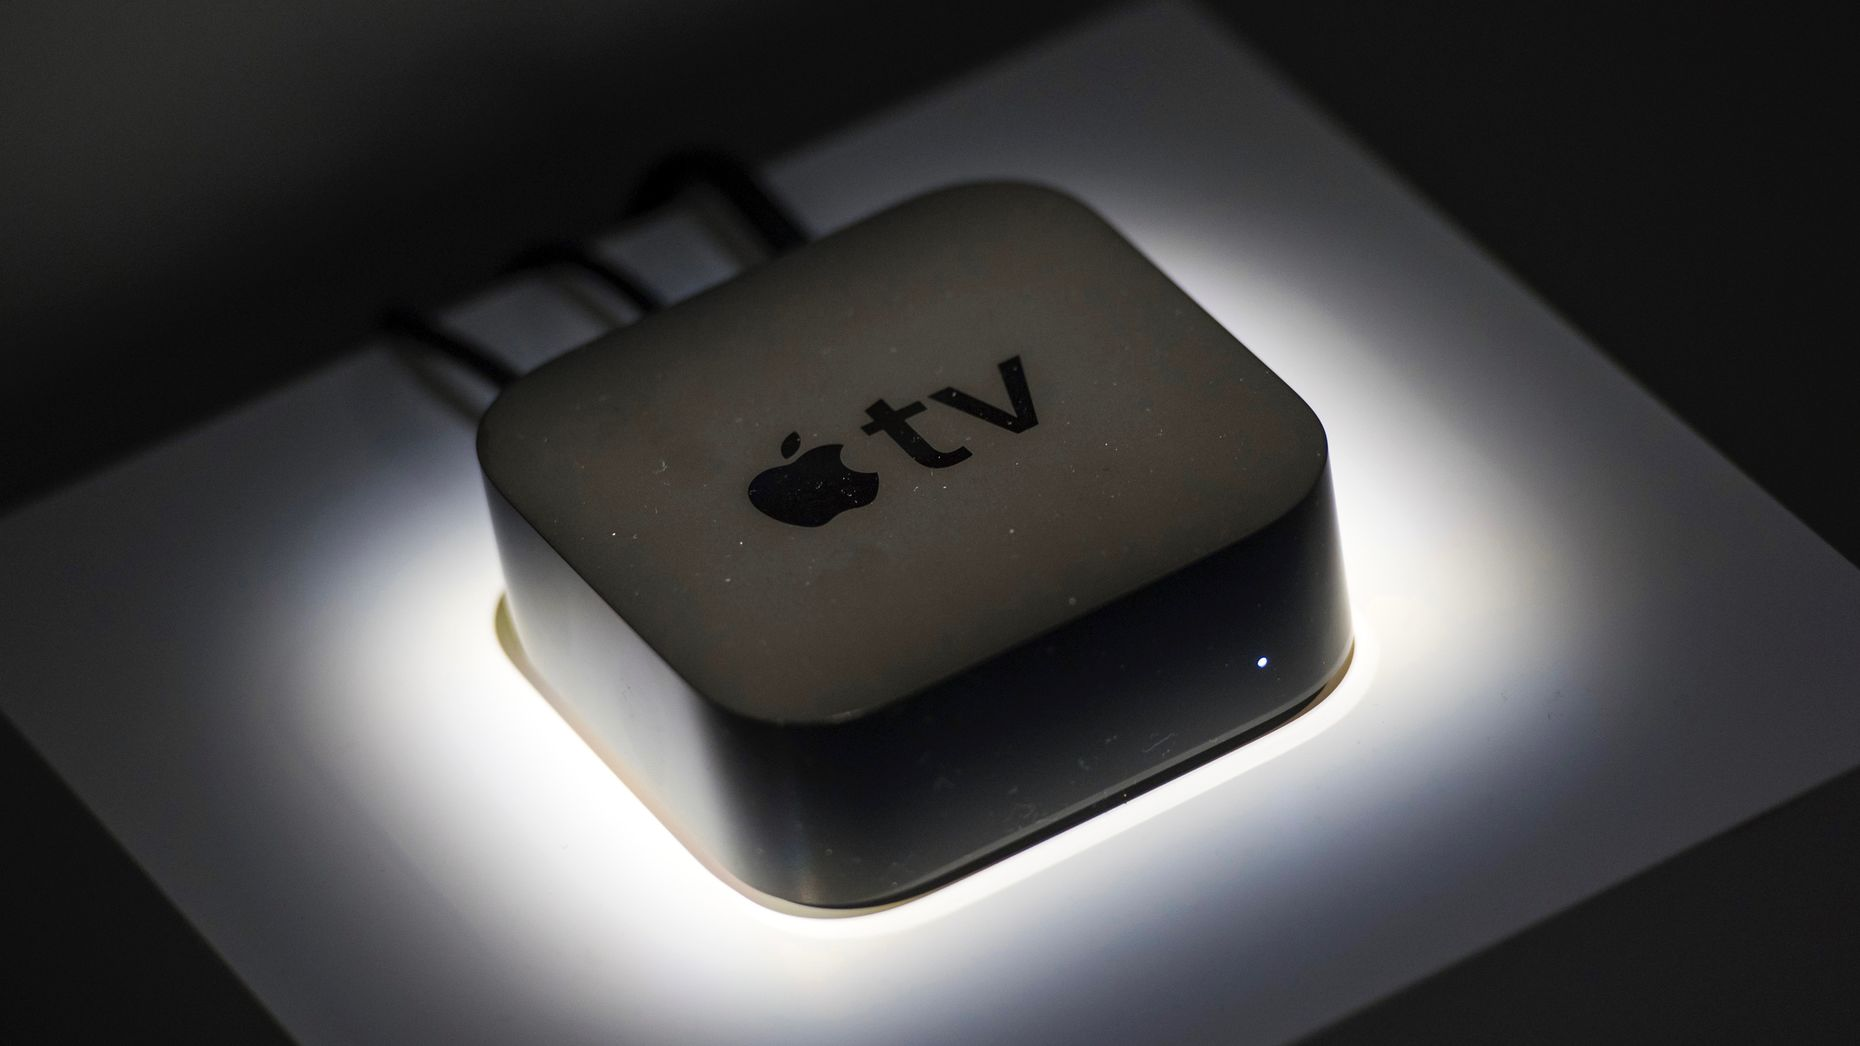 Apple's TV streaming box. Photo by Bloomberg